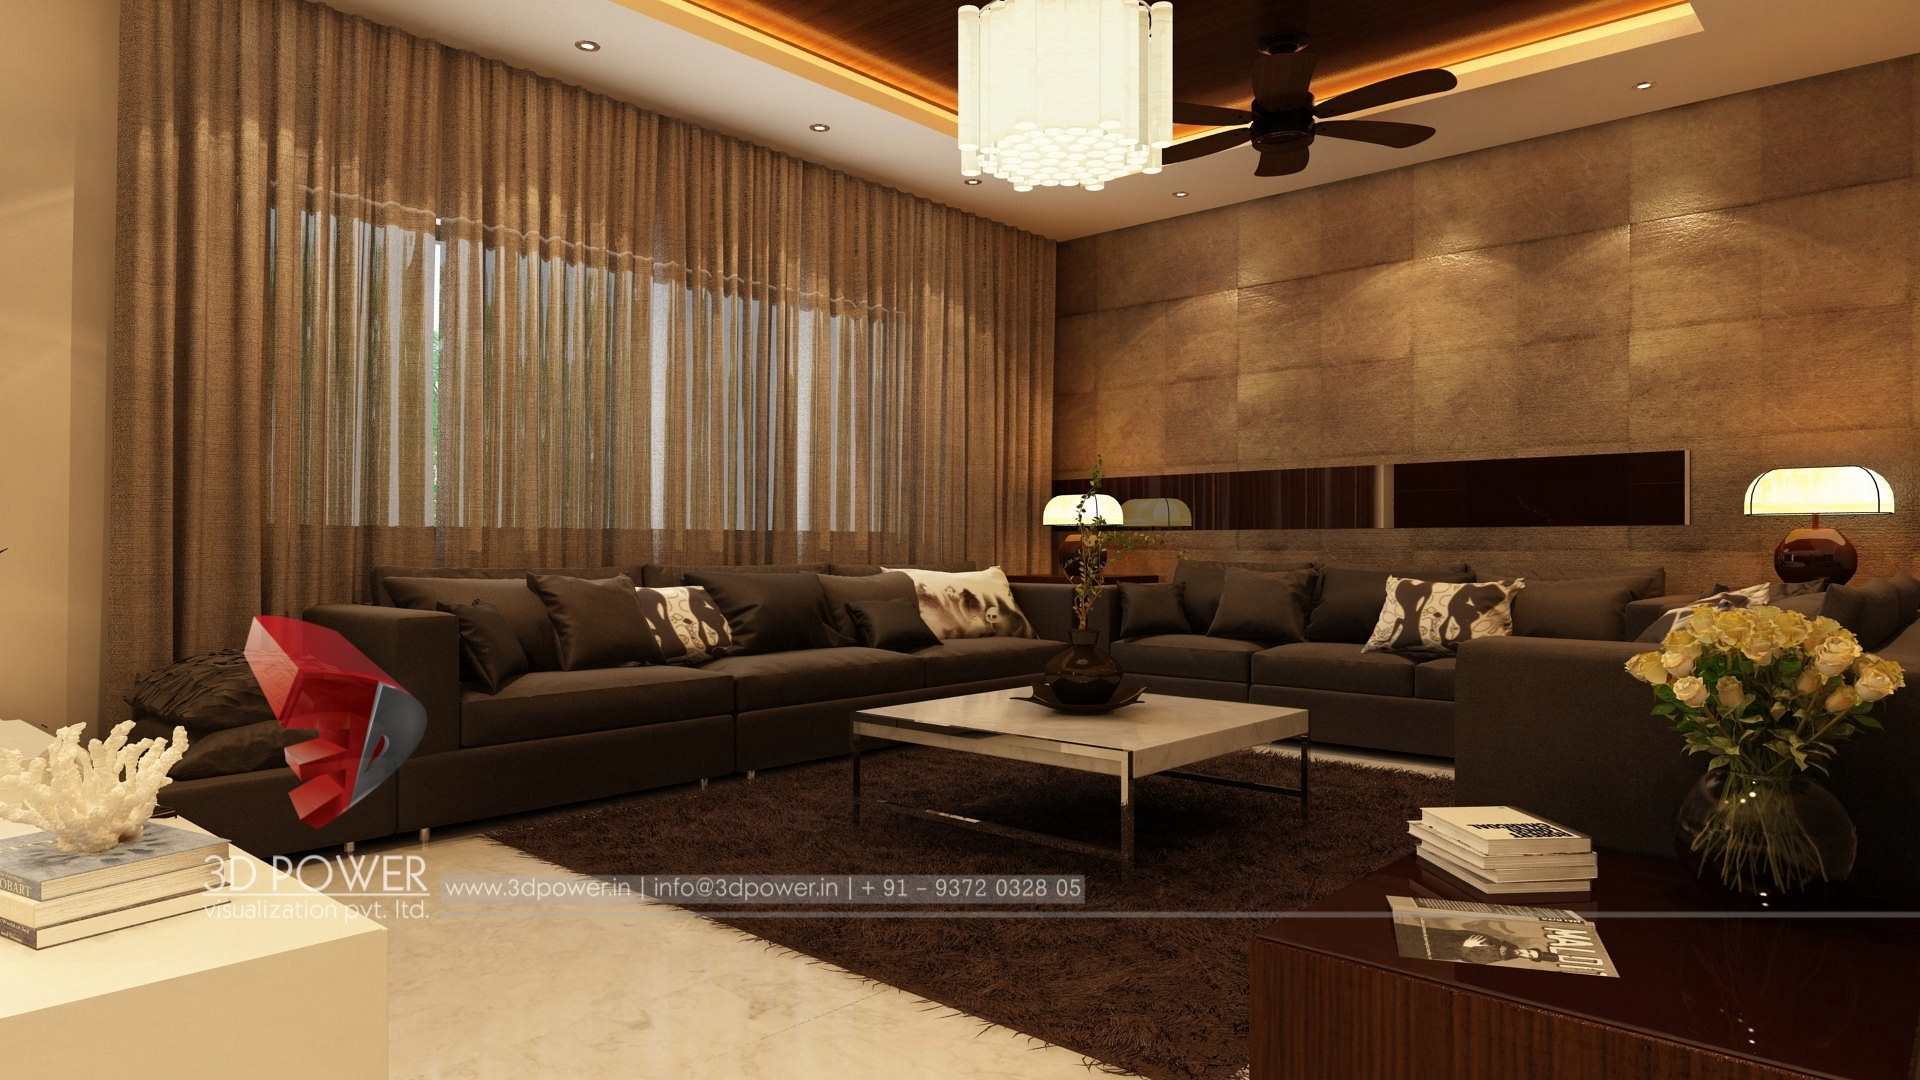 Interior Design Home Decorating Ideas: 3D Interior Design & Rendering Services